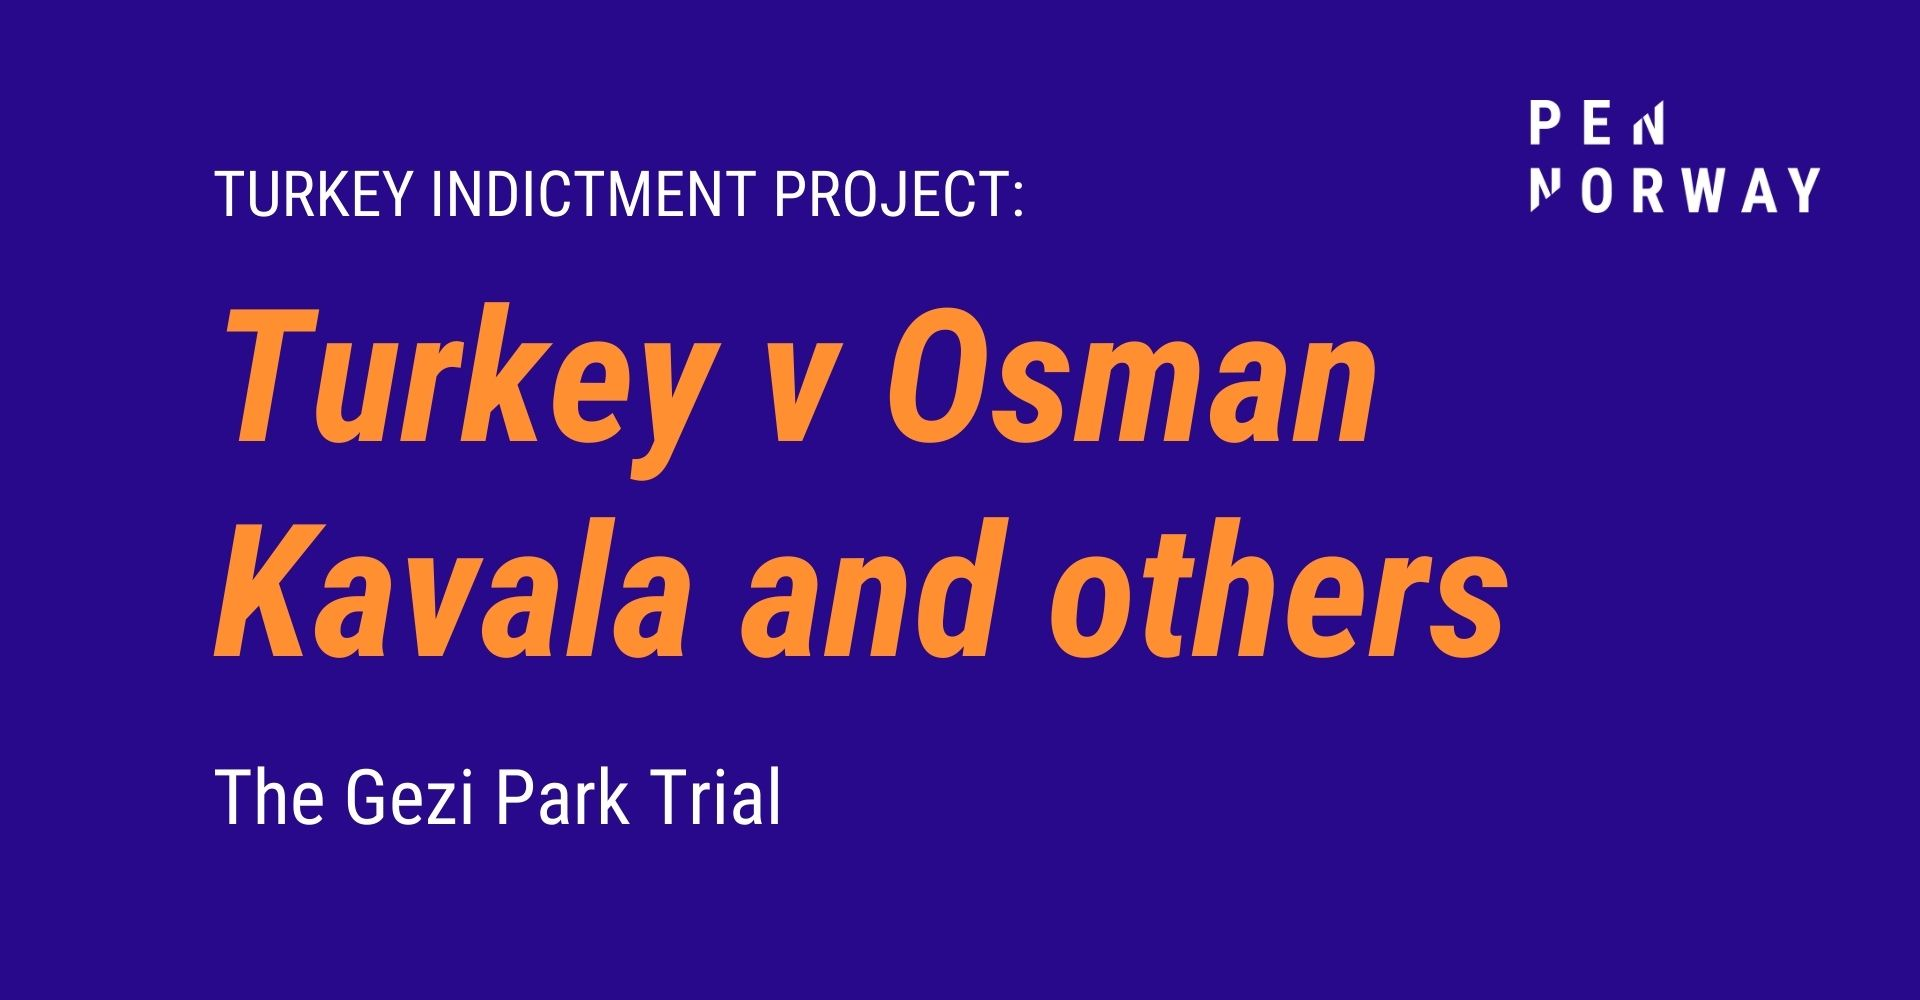 Legal report on Indictment: Turkey v Osman Kavala and others